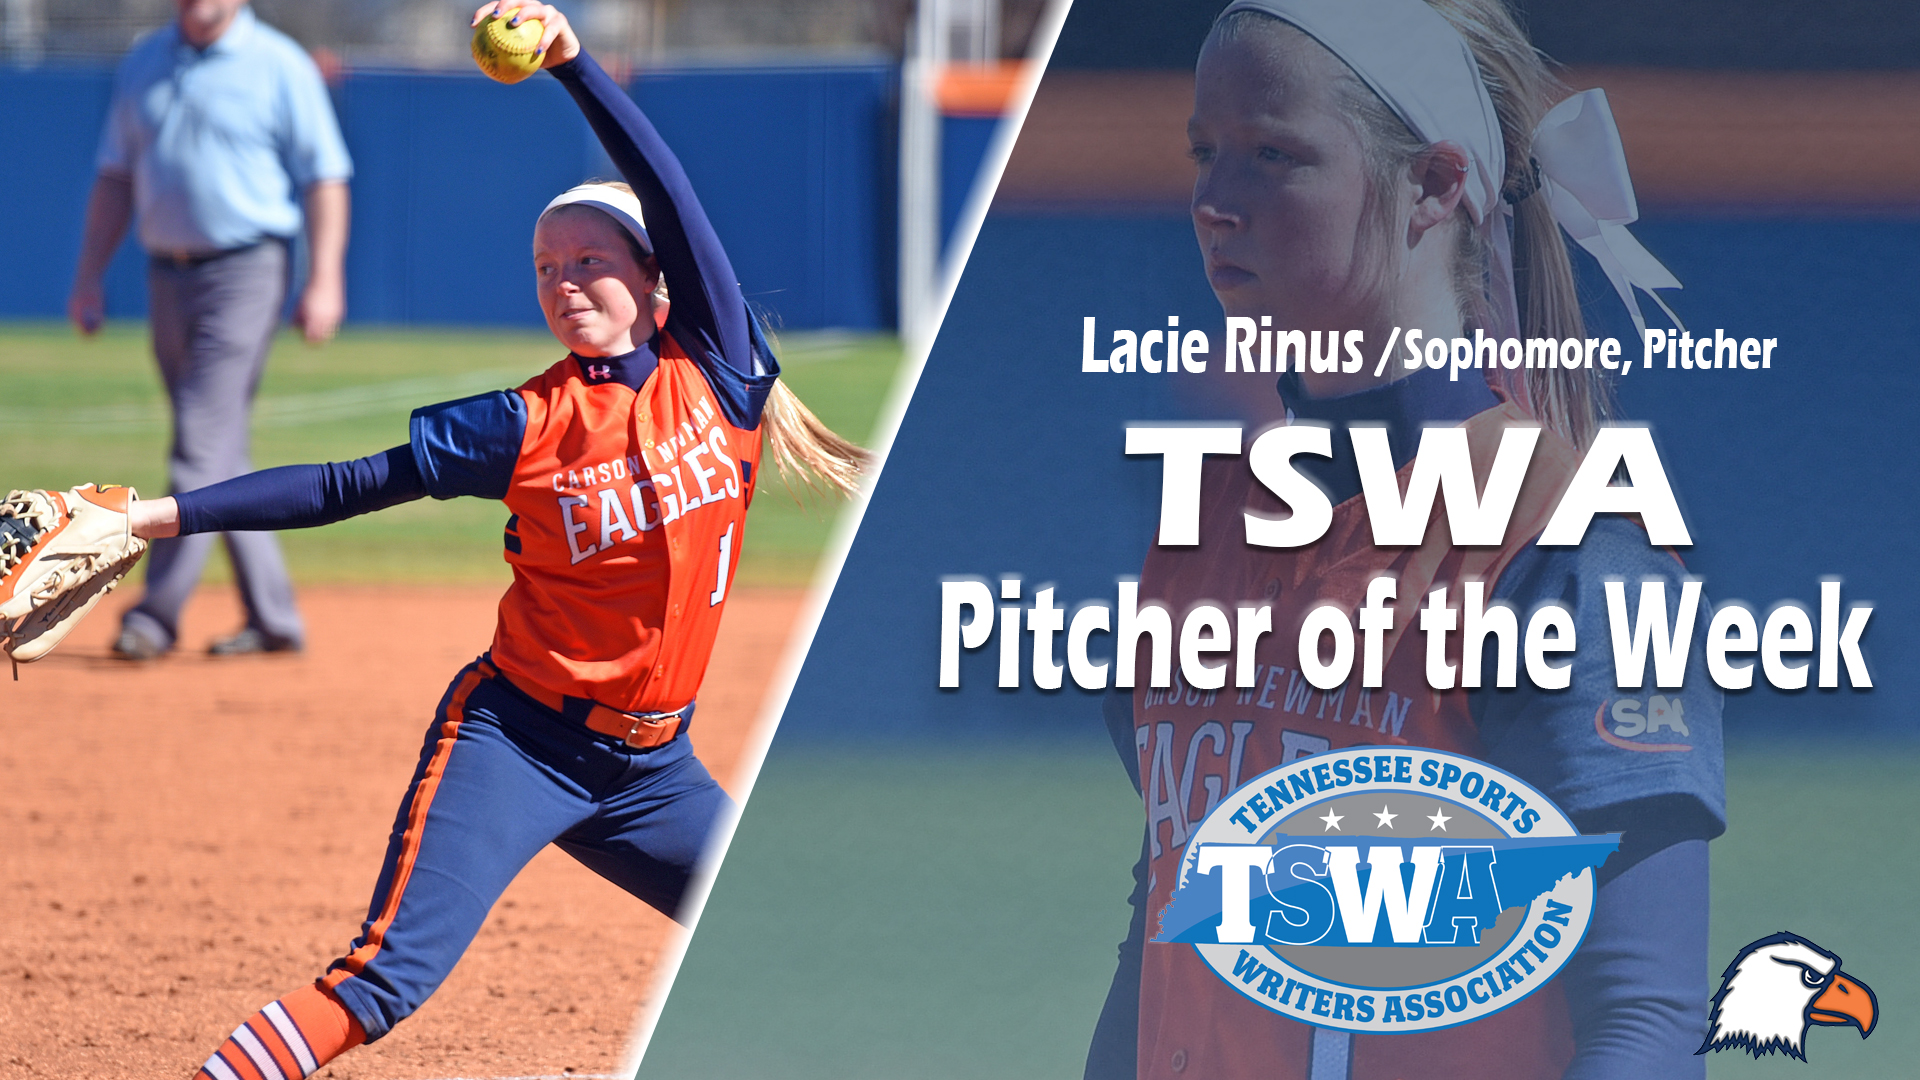 Pitcher of the Week plaudit number four, Rinus honored by TSWA